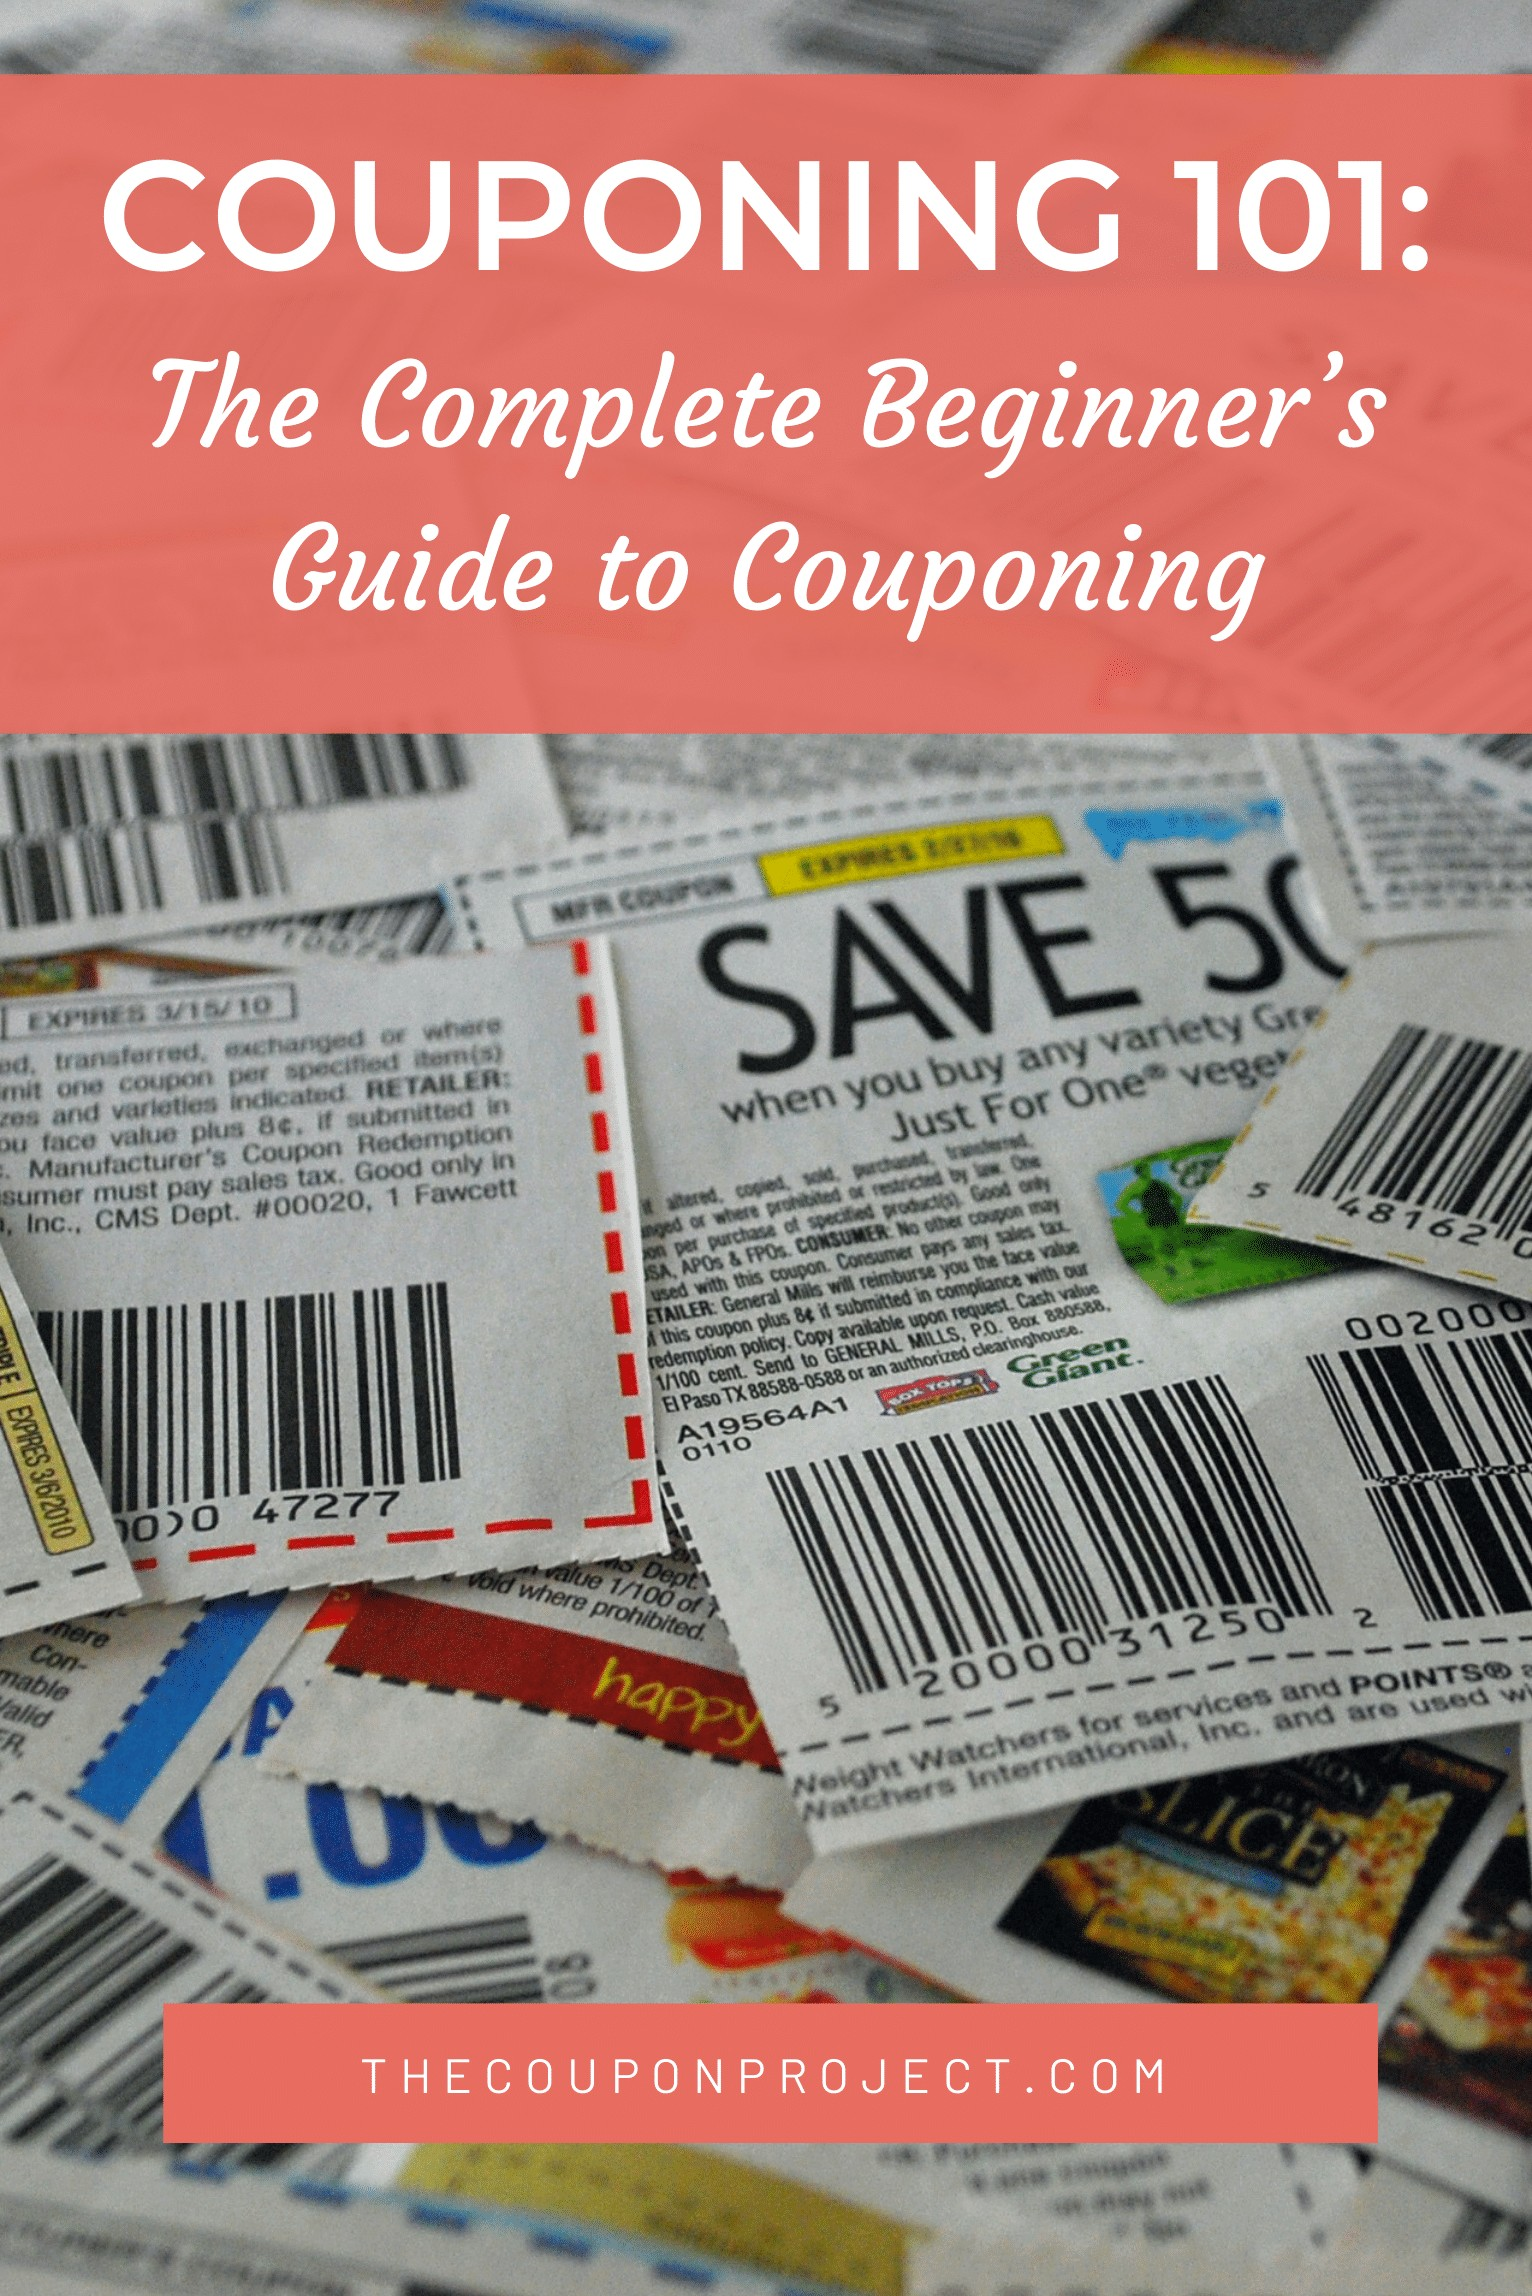 Couponing 101 The Complete Beginner S Guide To Couponing In 2020